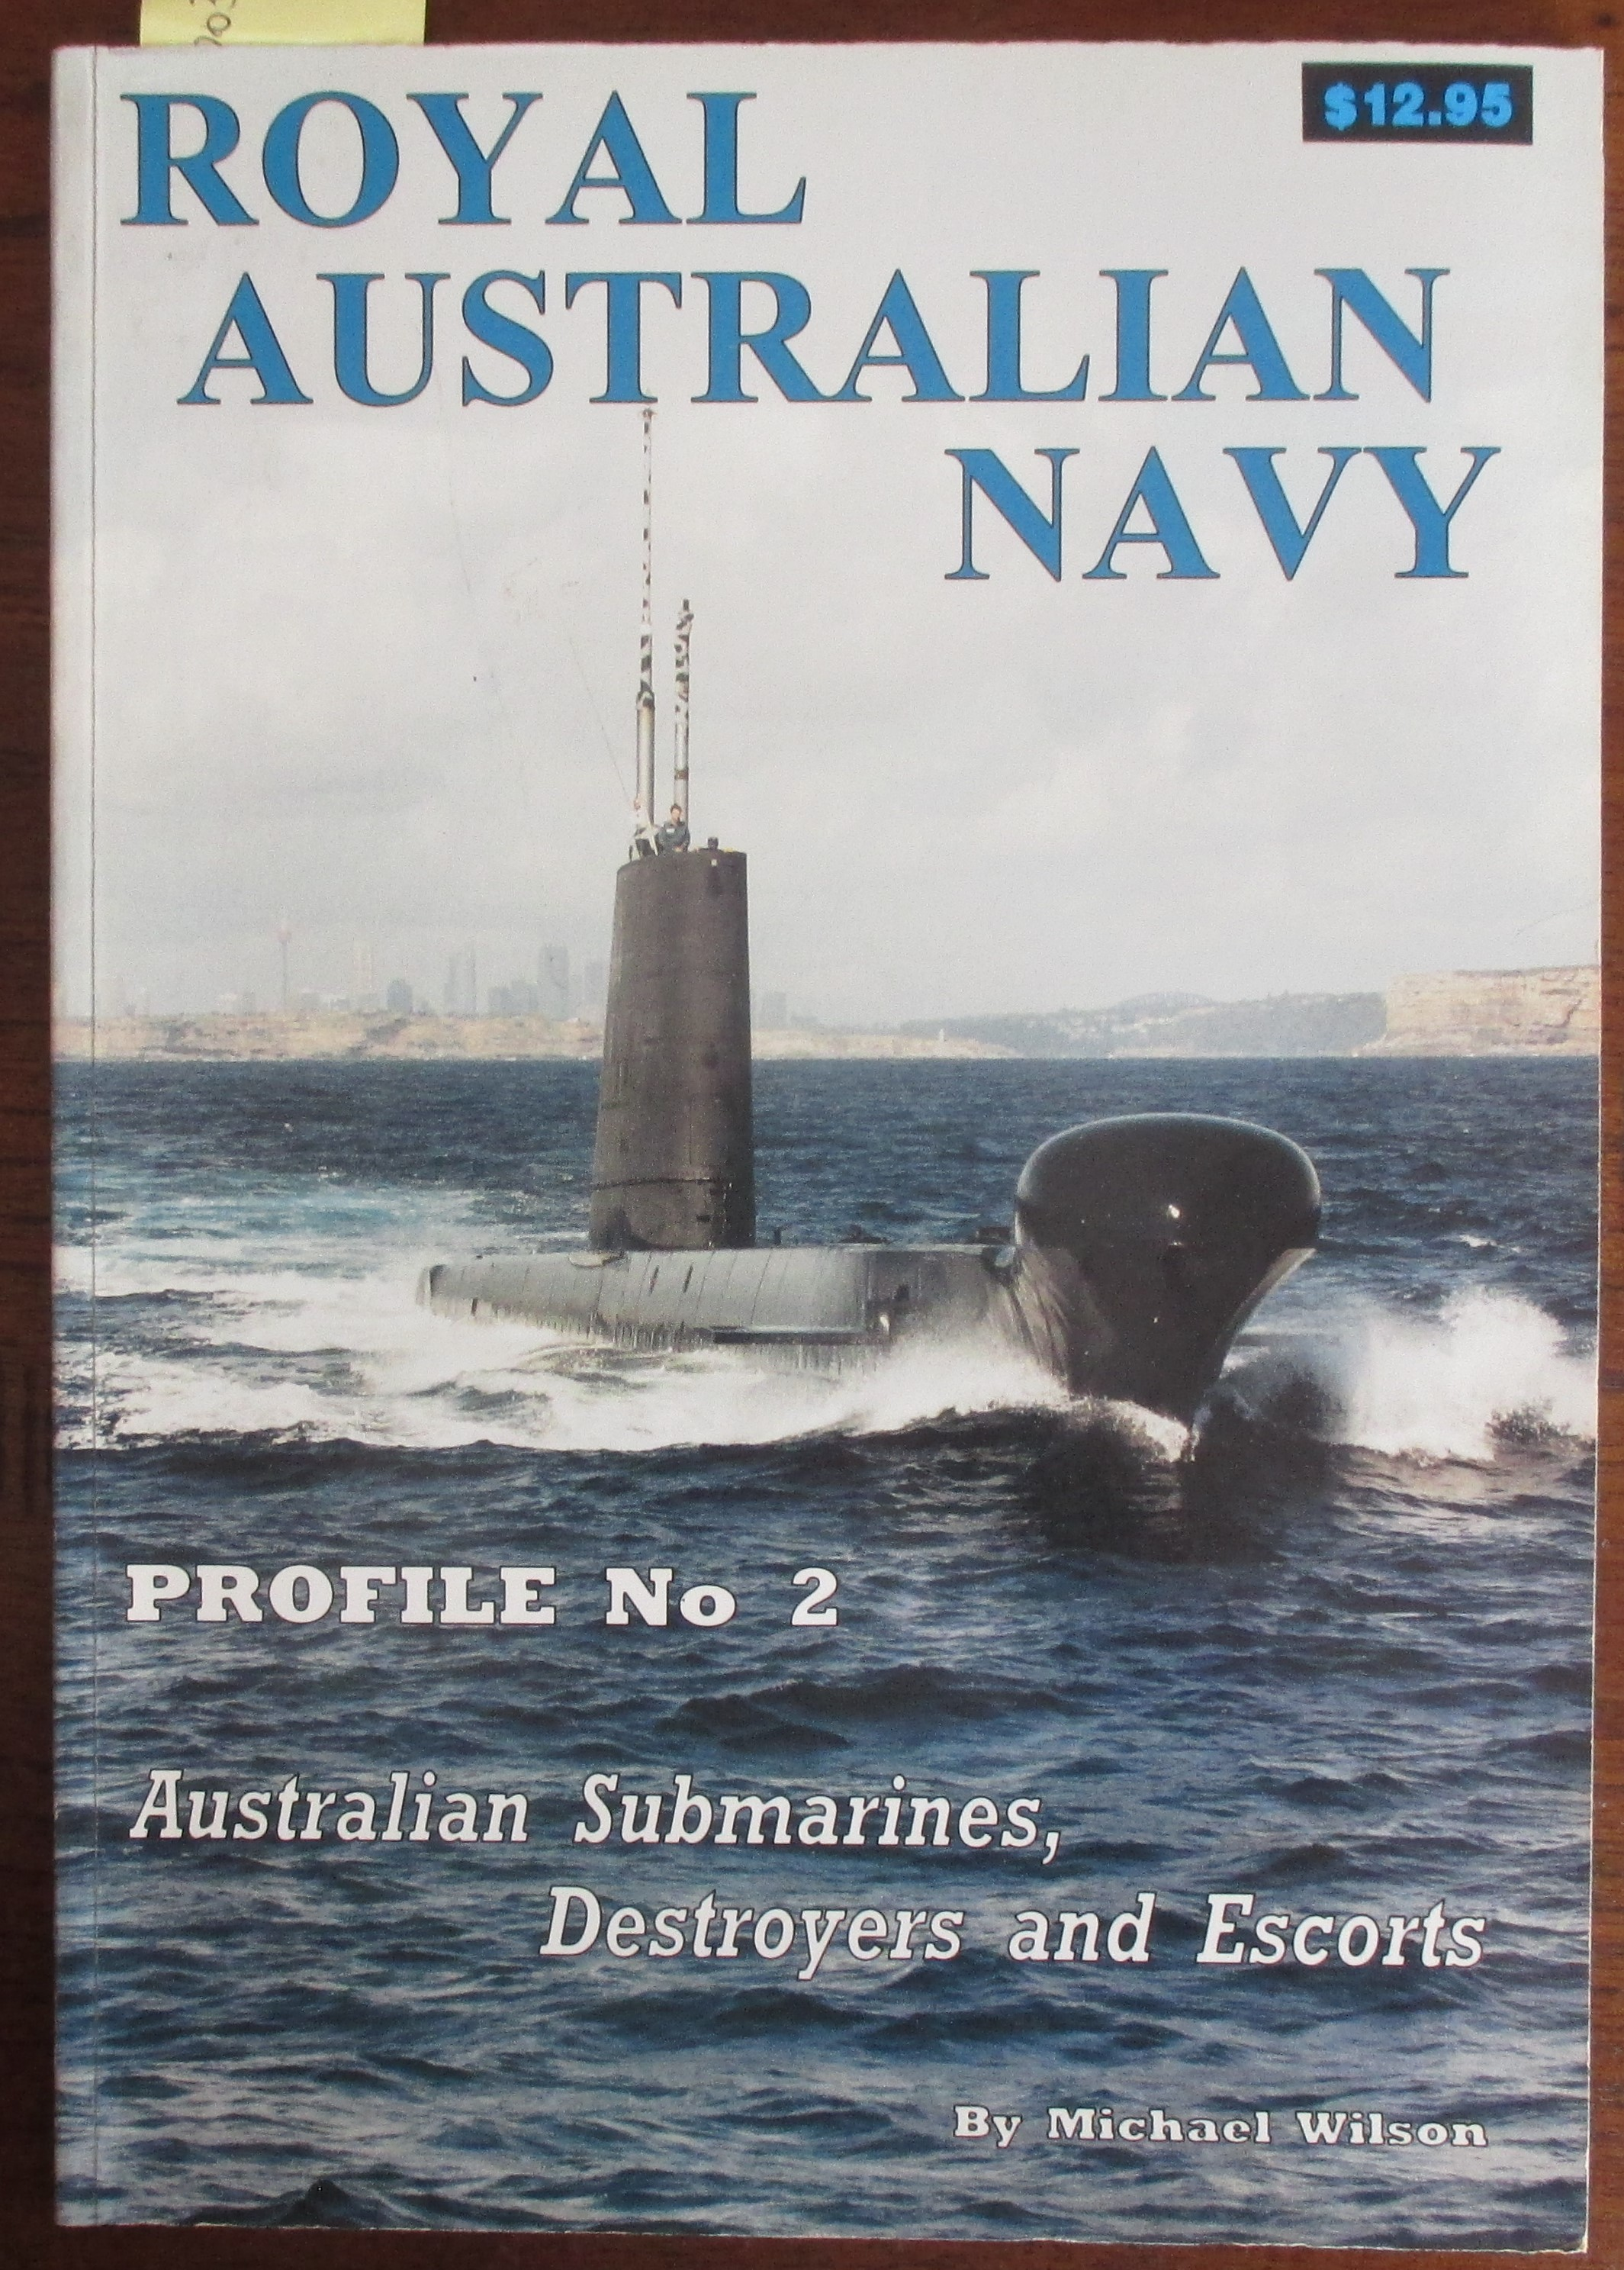 Image for Royal Australian Navy: Australian Submarines, Destroyers and Escorts (Profile No. 2)